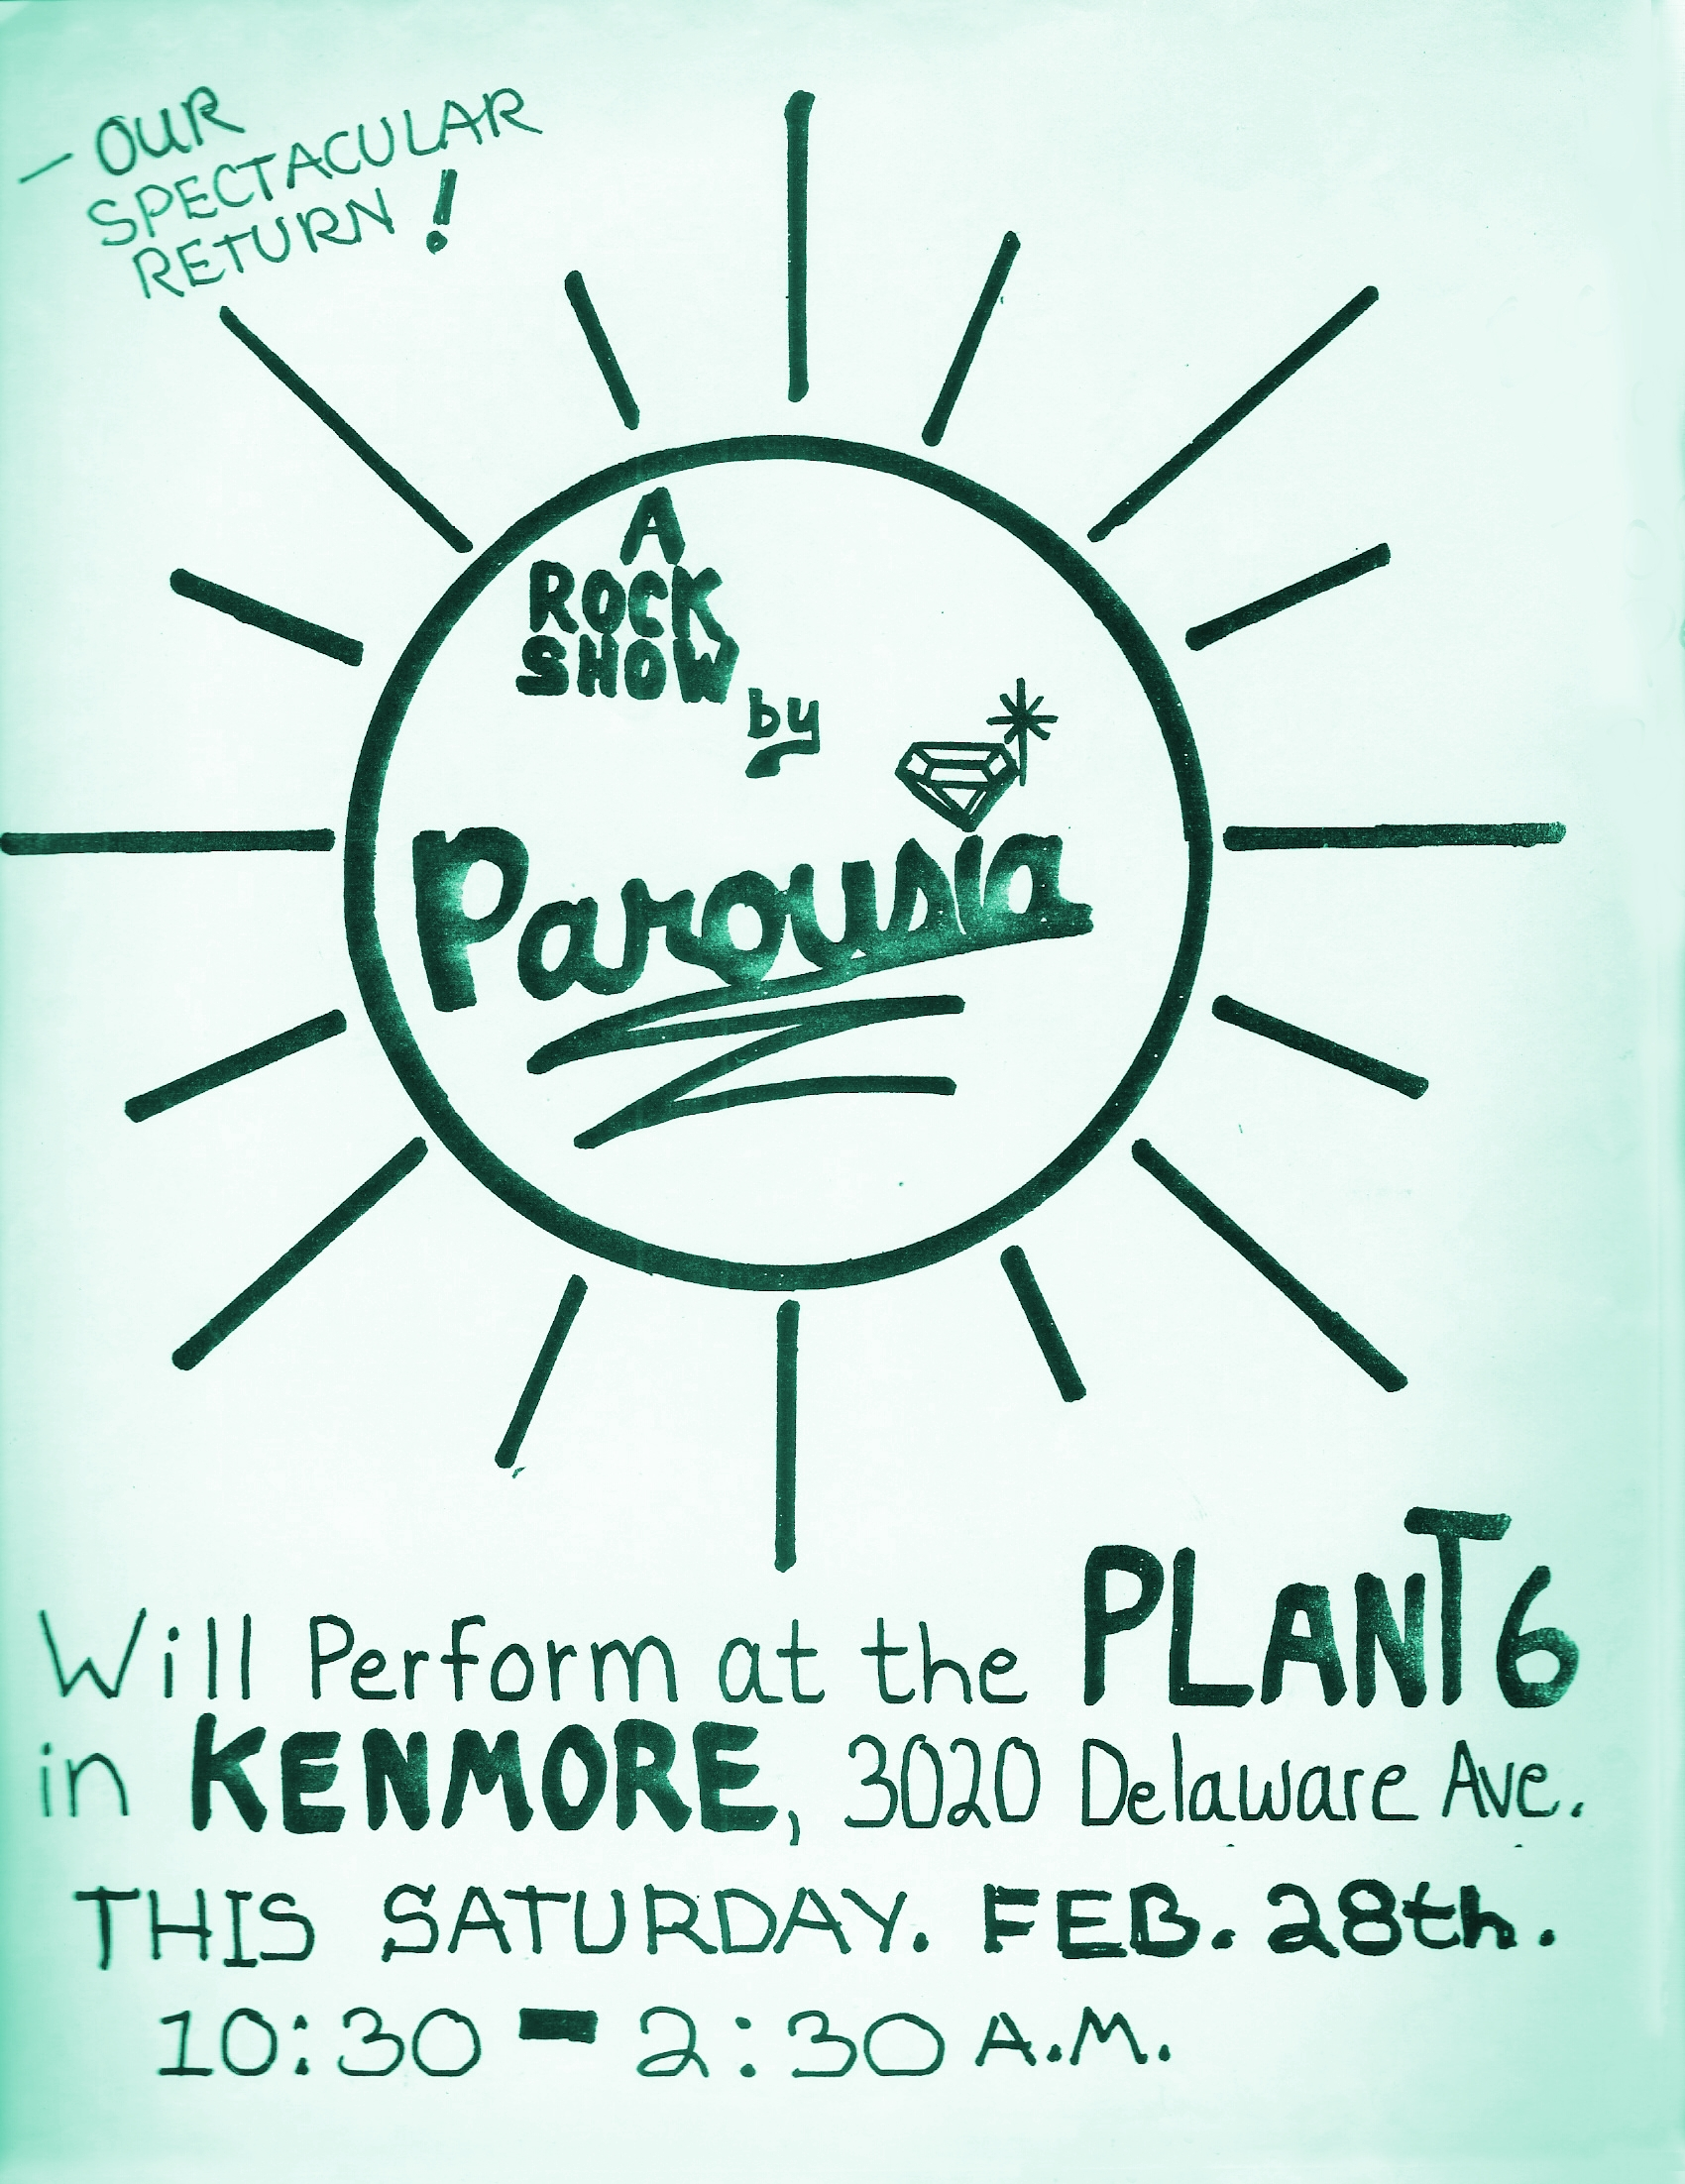 Parousia at the Plant 6 - Saturday February 28th, 1981